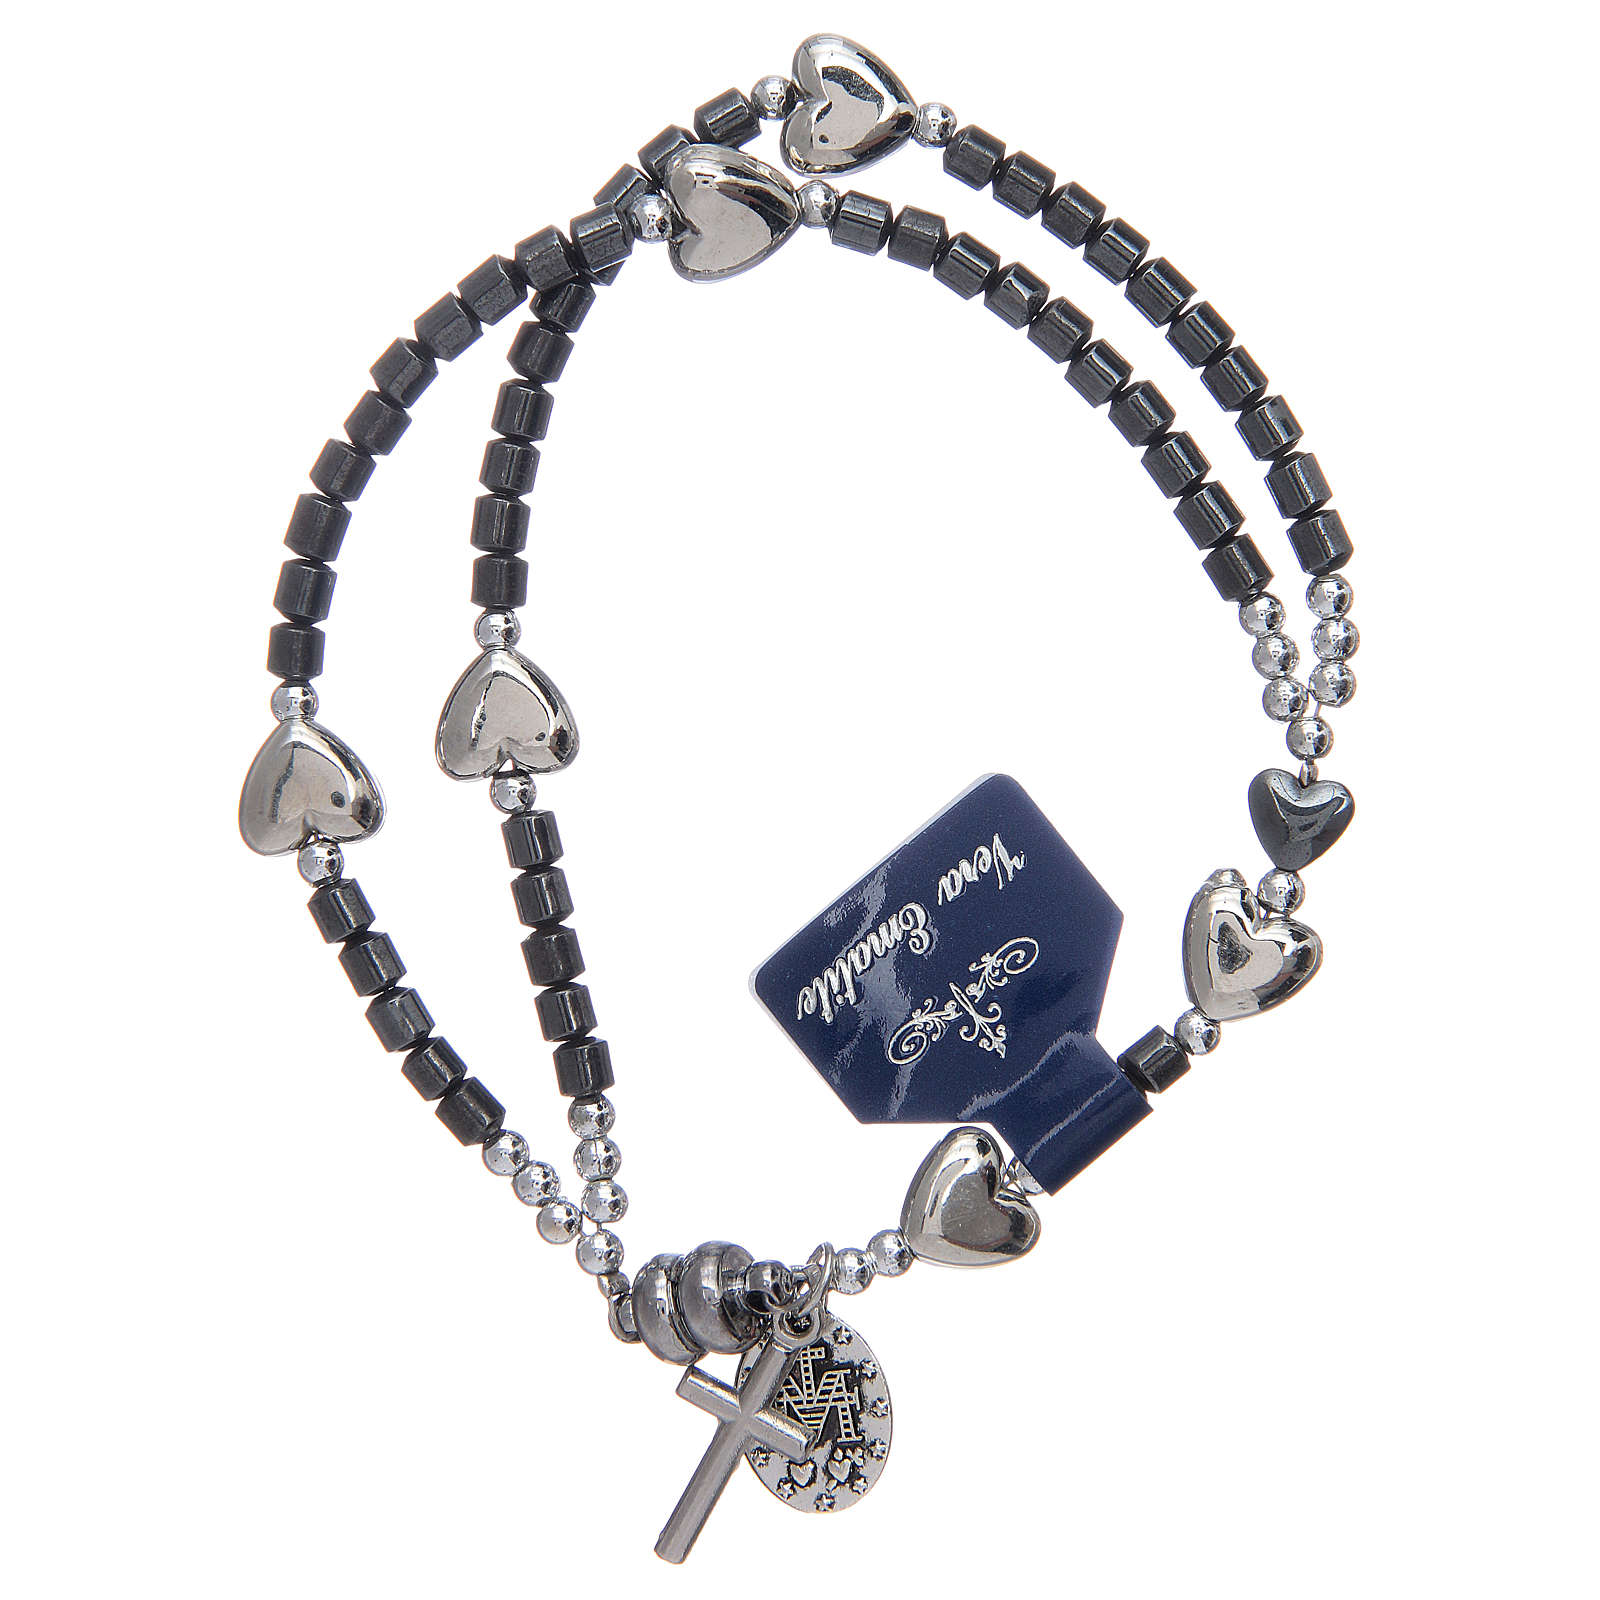 Rosary bracelet with hematite grains and magnetic closure 4